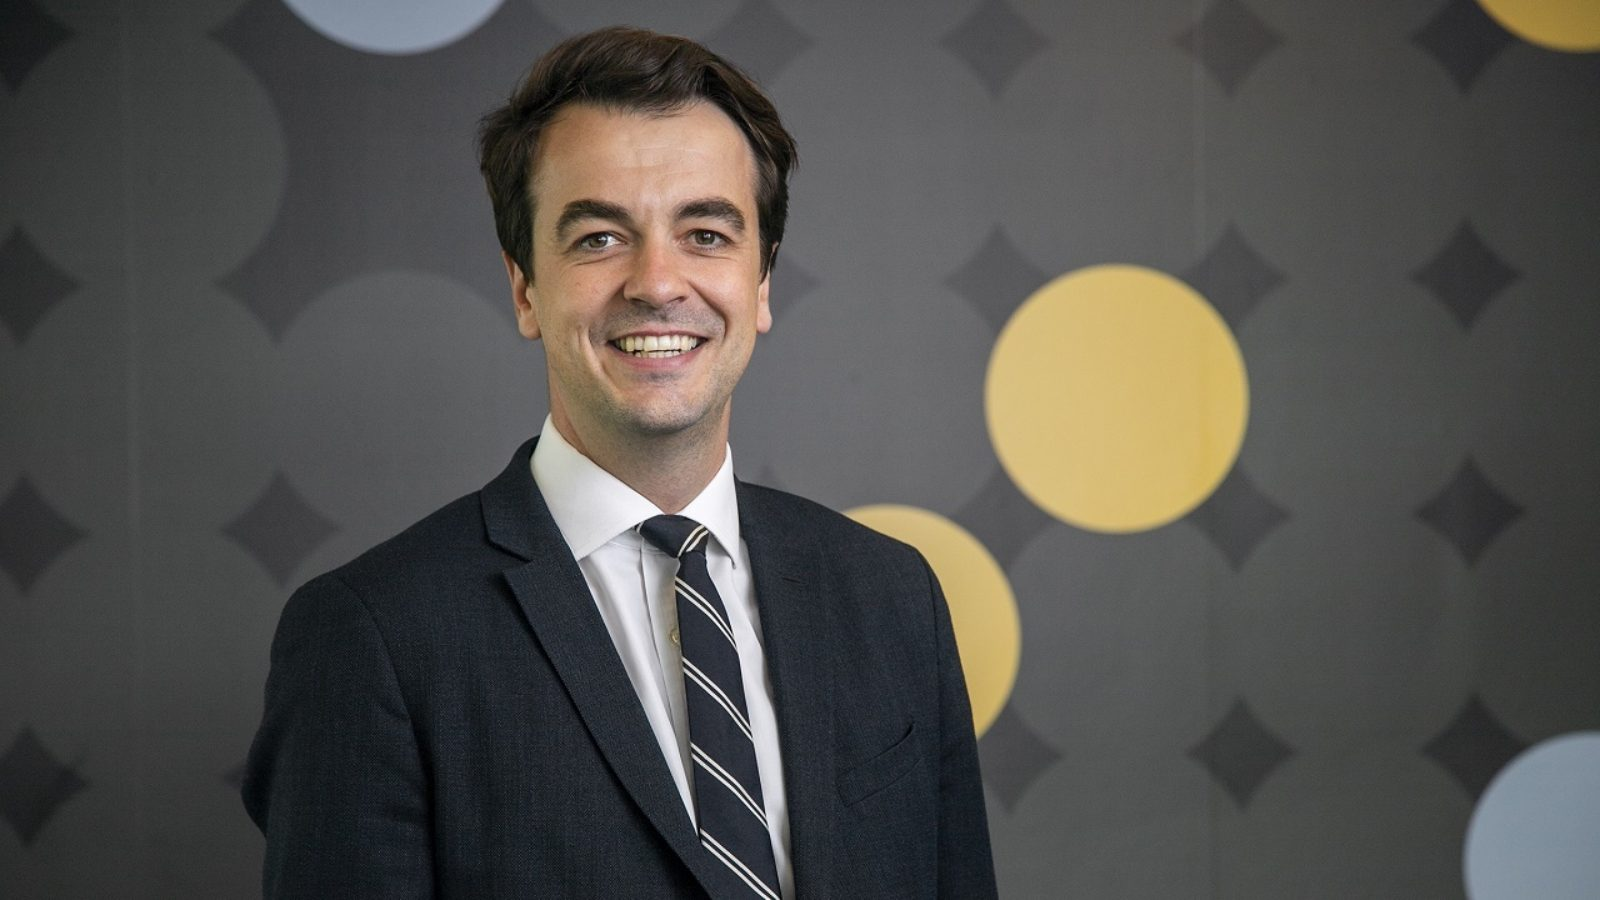 Andrew Dines, director and chartered financial planner, AAB Wealth